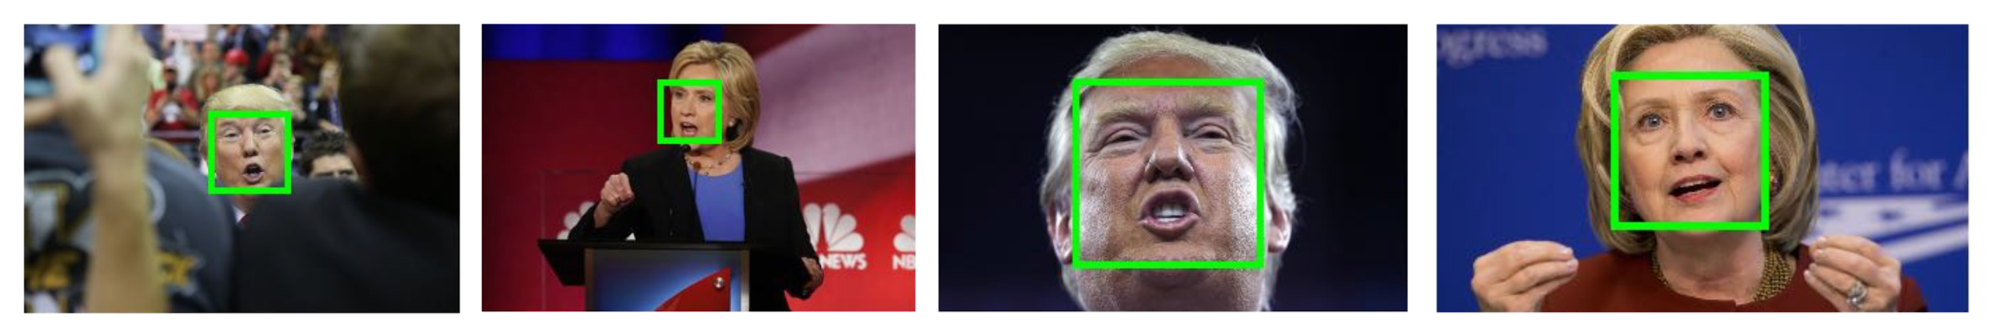 Some of the images from our data set. The faces detected by the web service are highlighted with a green box.